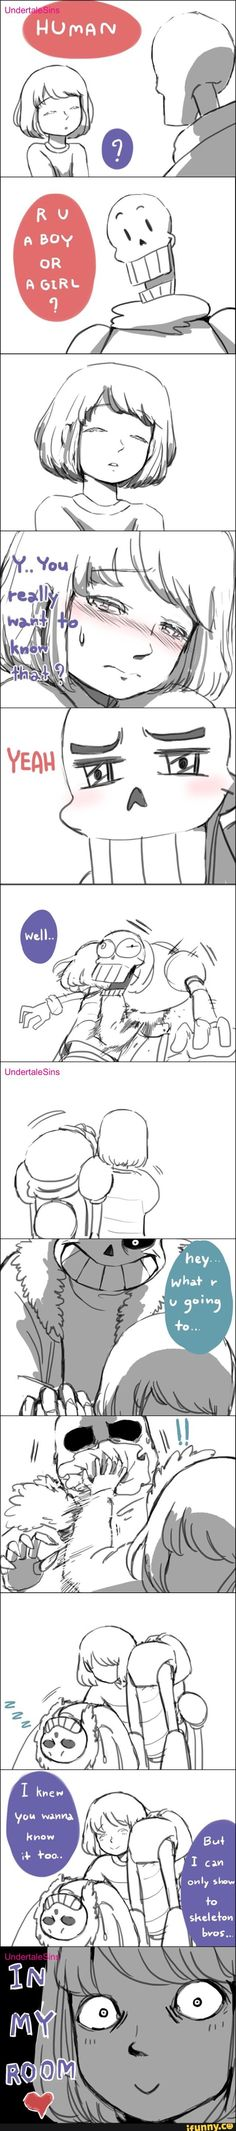 Undertale comic || I didn't really quite understand what's going on but it looks funny